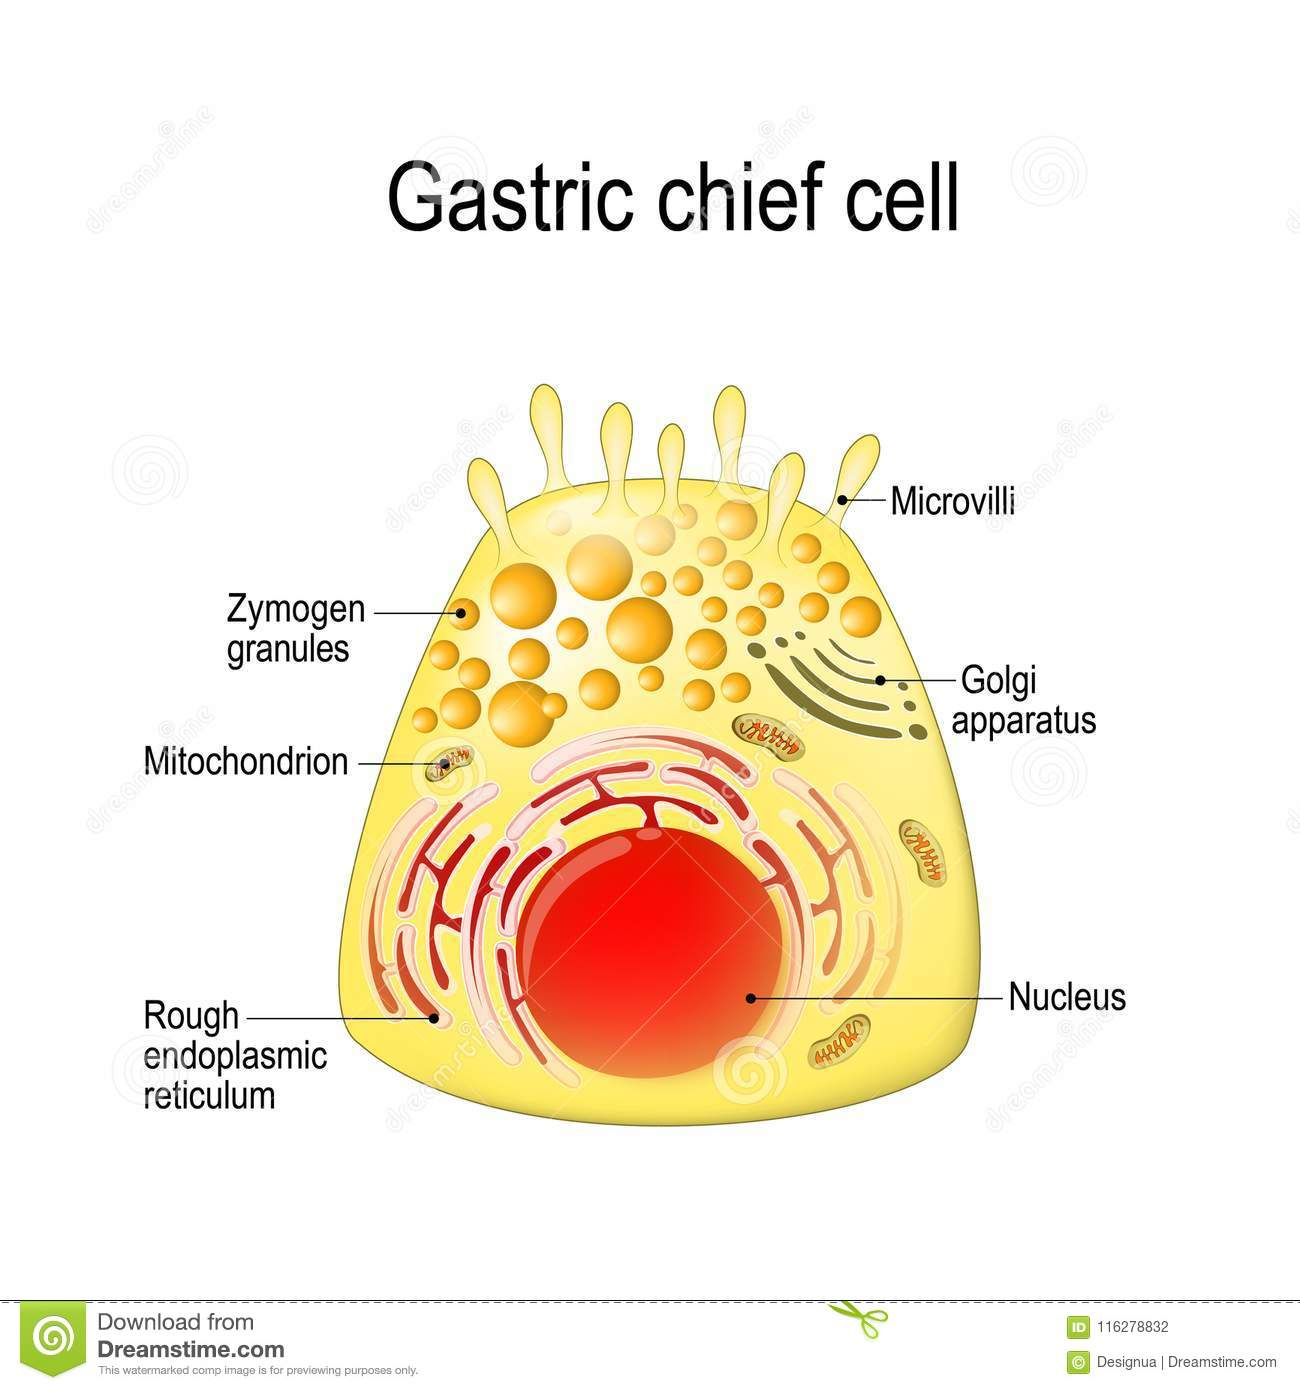 gastric chief peptic, gastric zymogenic cell. stock vector - illustration  of diagram, gastric: 116278832  dreamstime.com